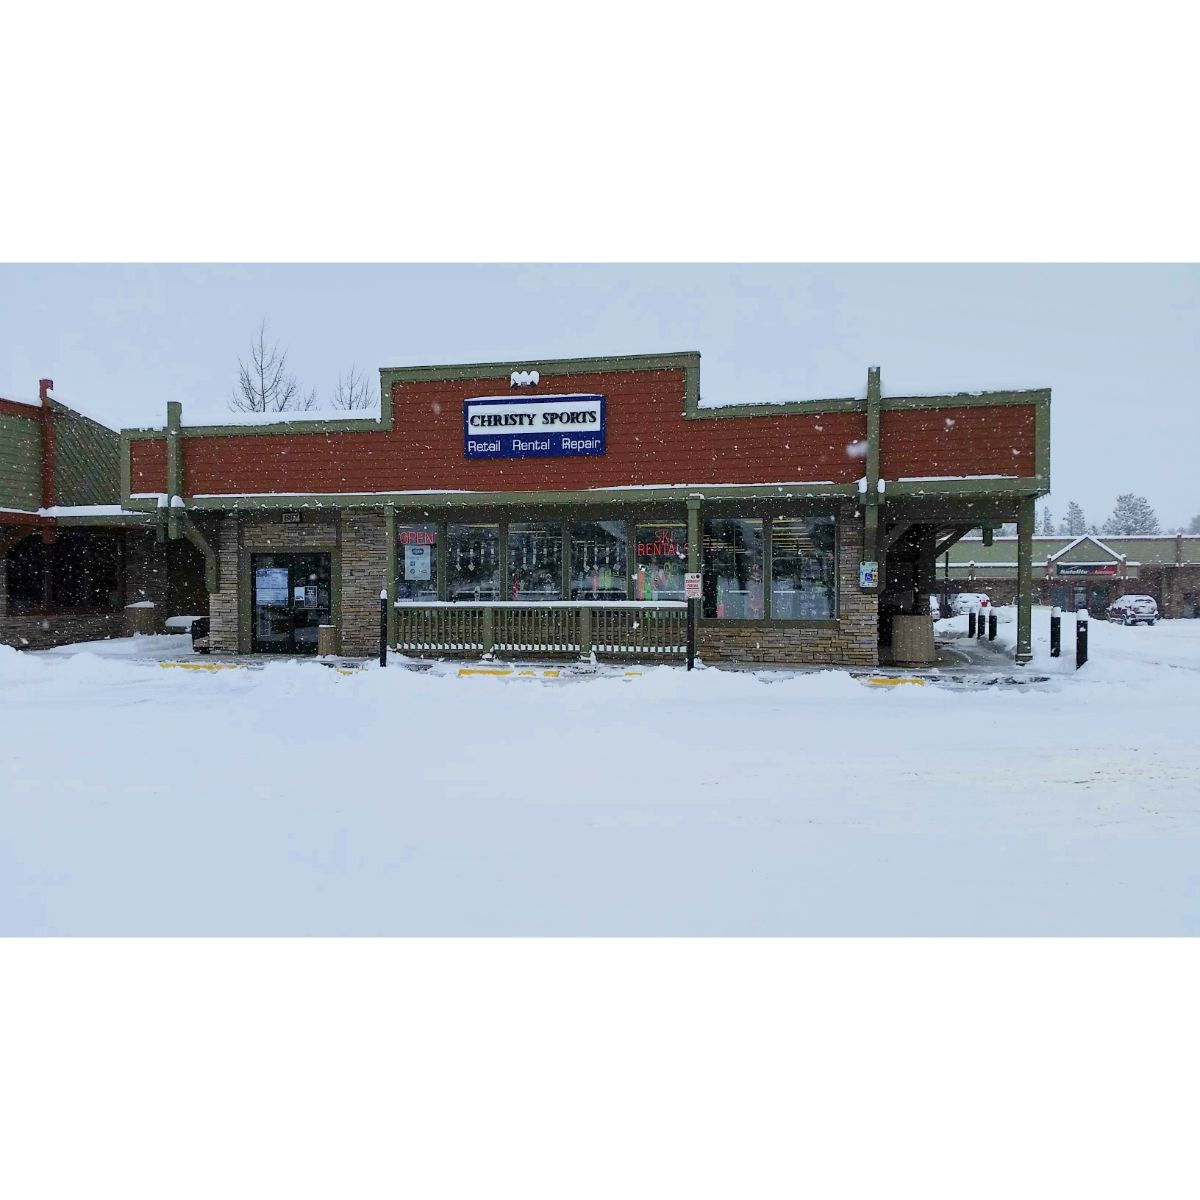 christy sports ski and snowboard rental location in frisco